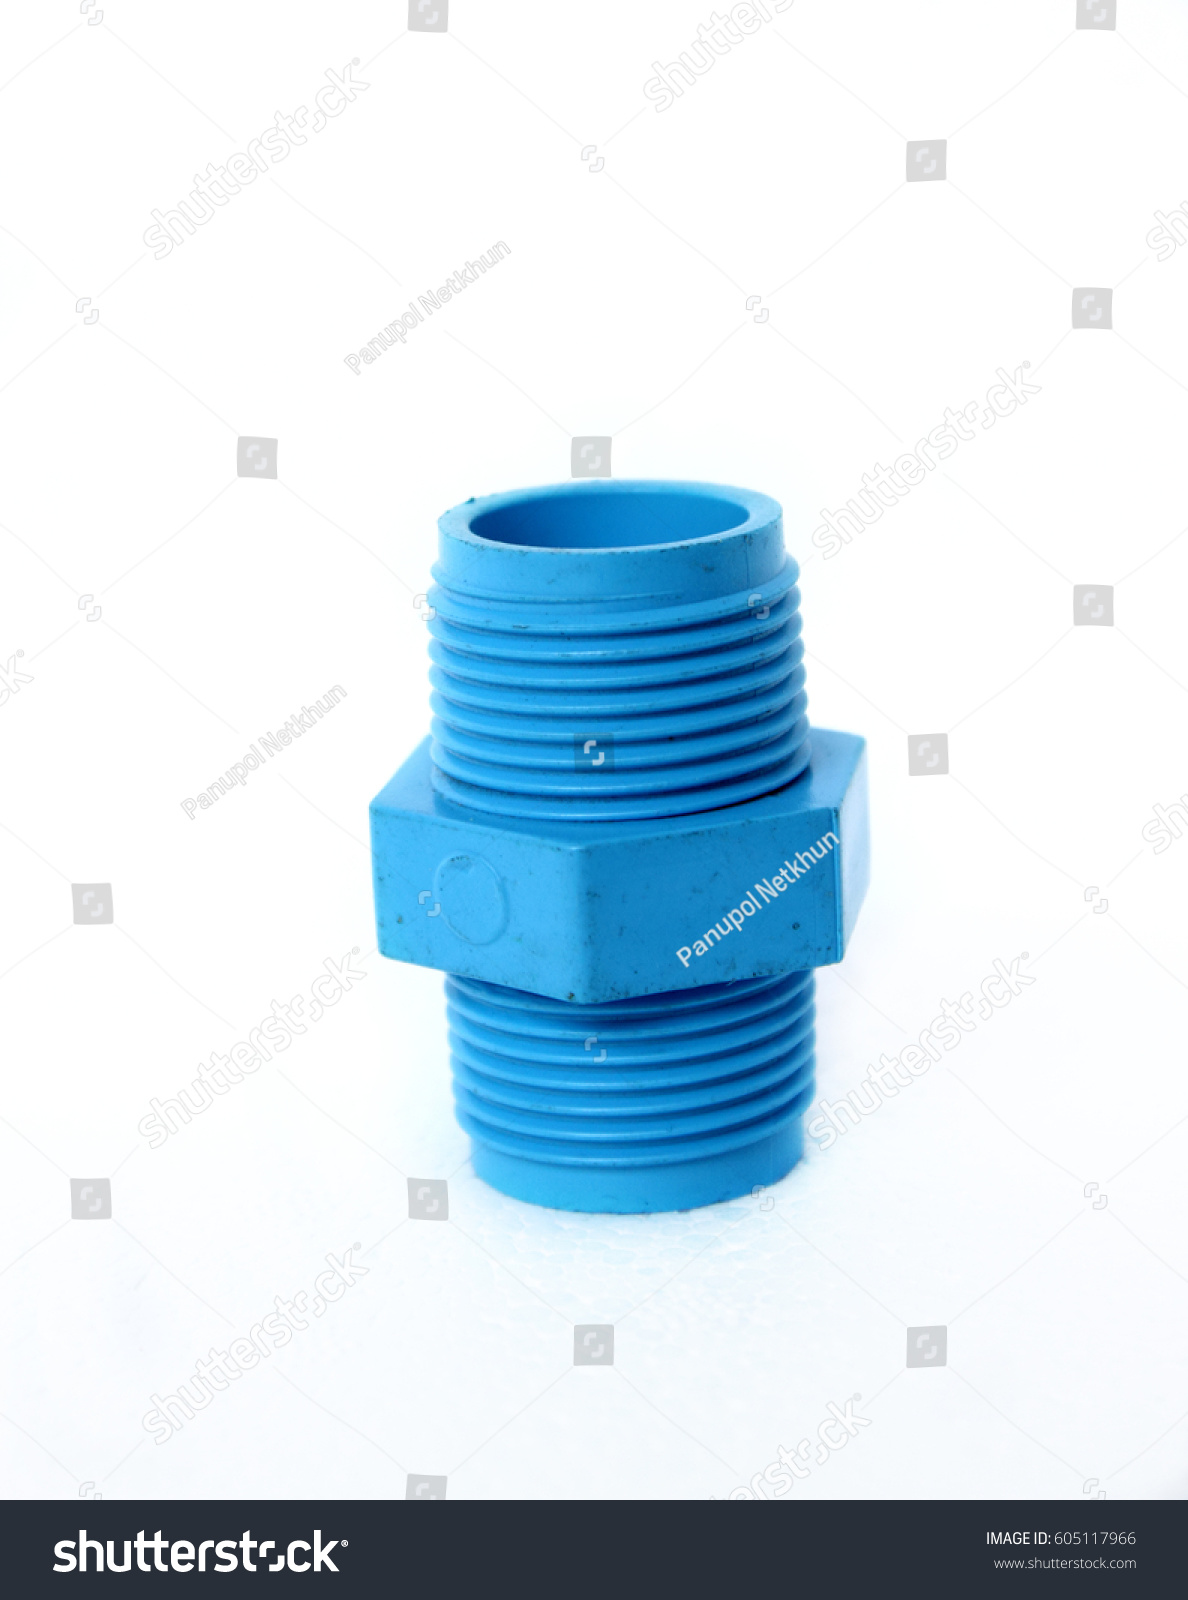 Pvc Joints Pvc Joints On Isolate Stock Photo Edit Now 605117966 Shutterstock